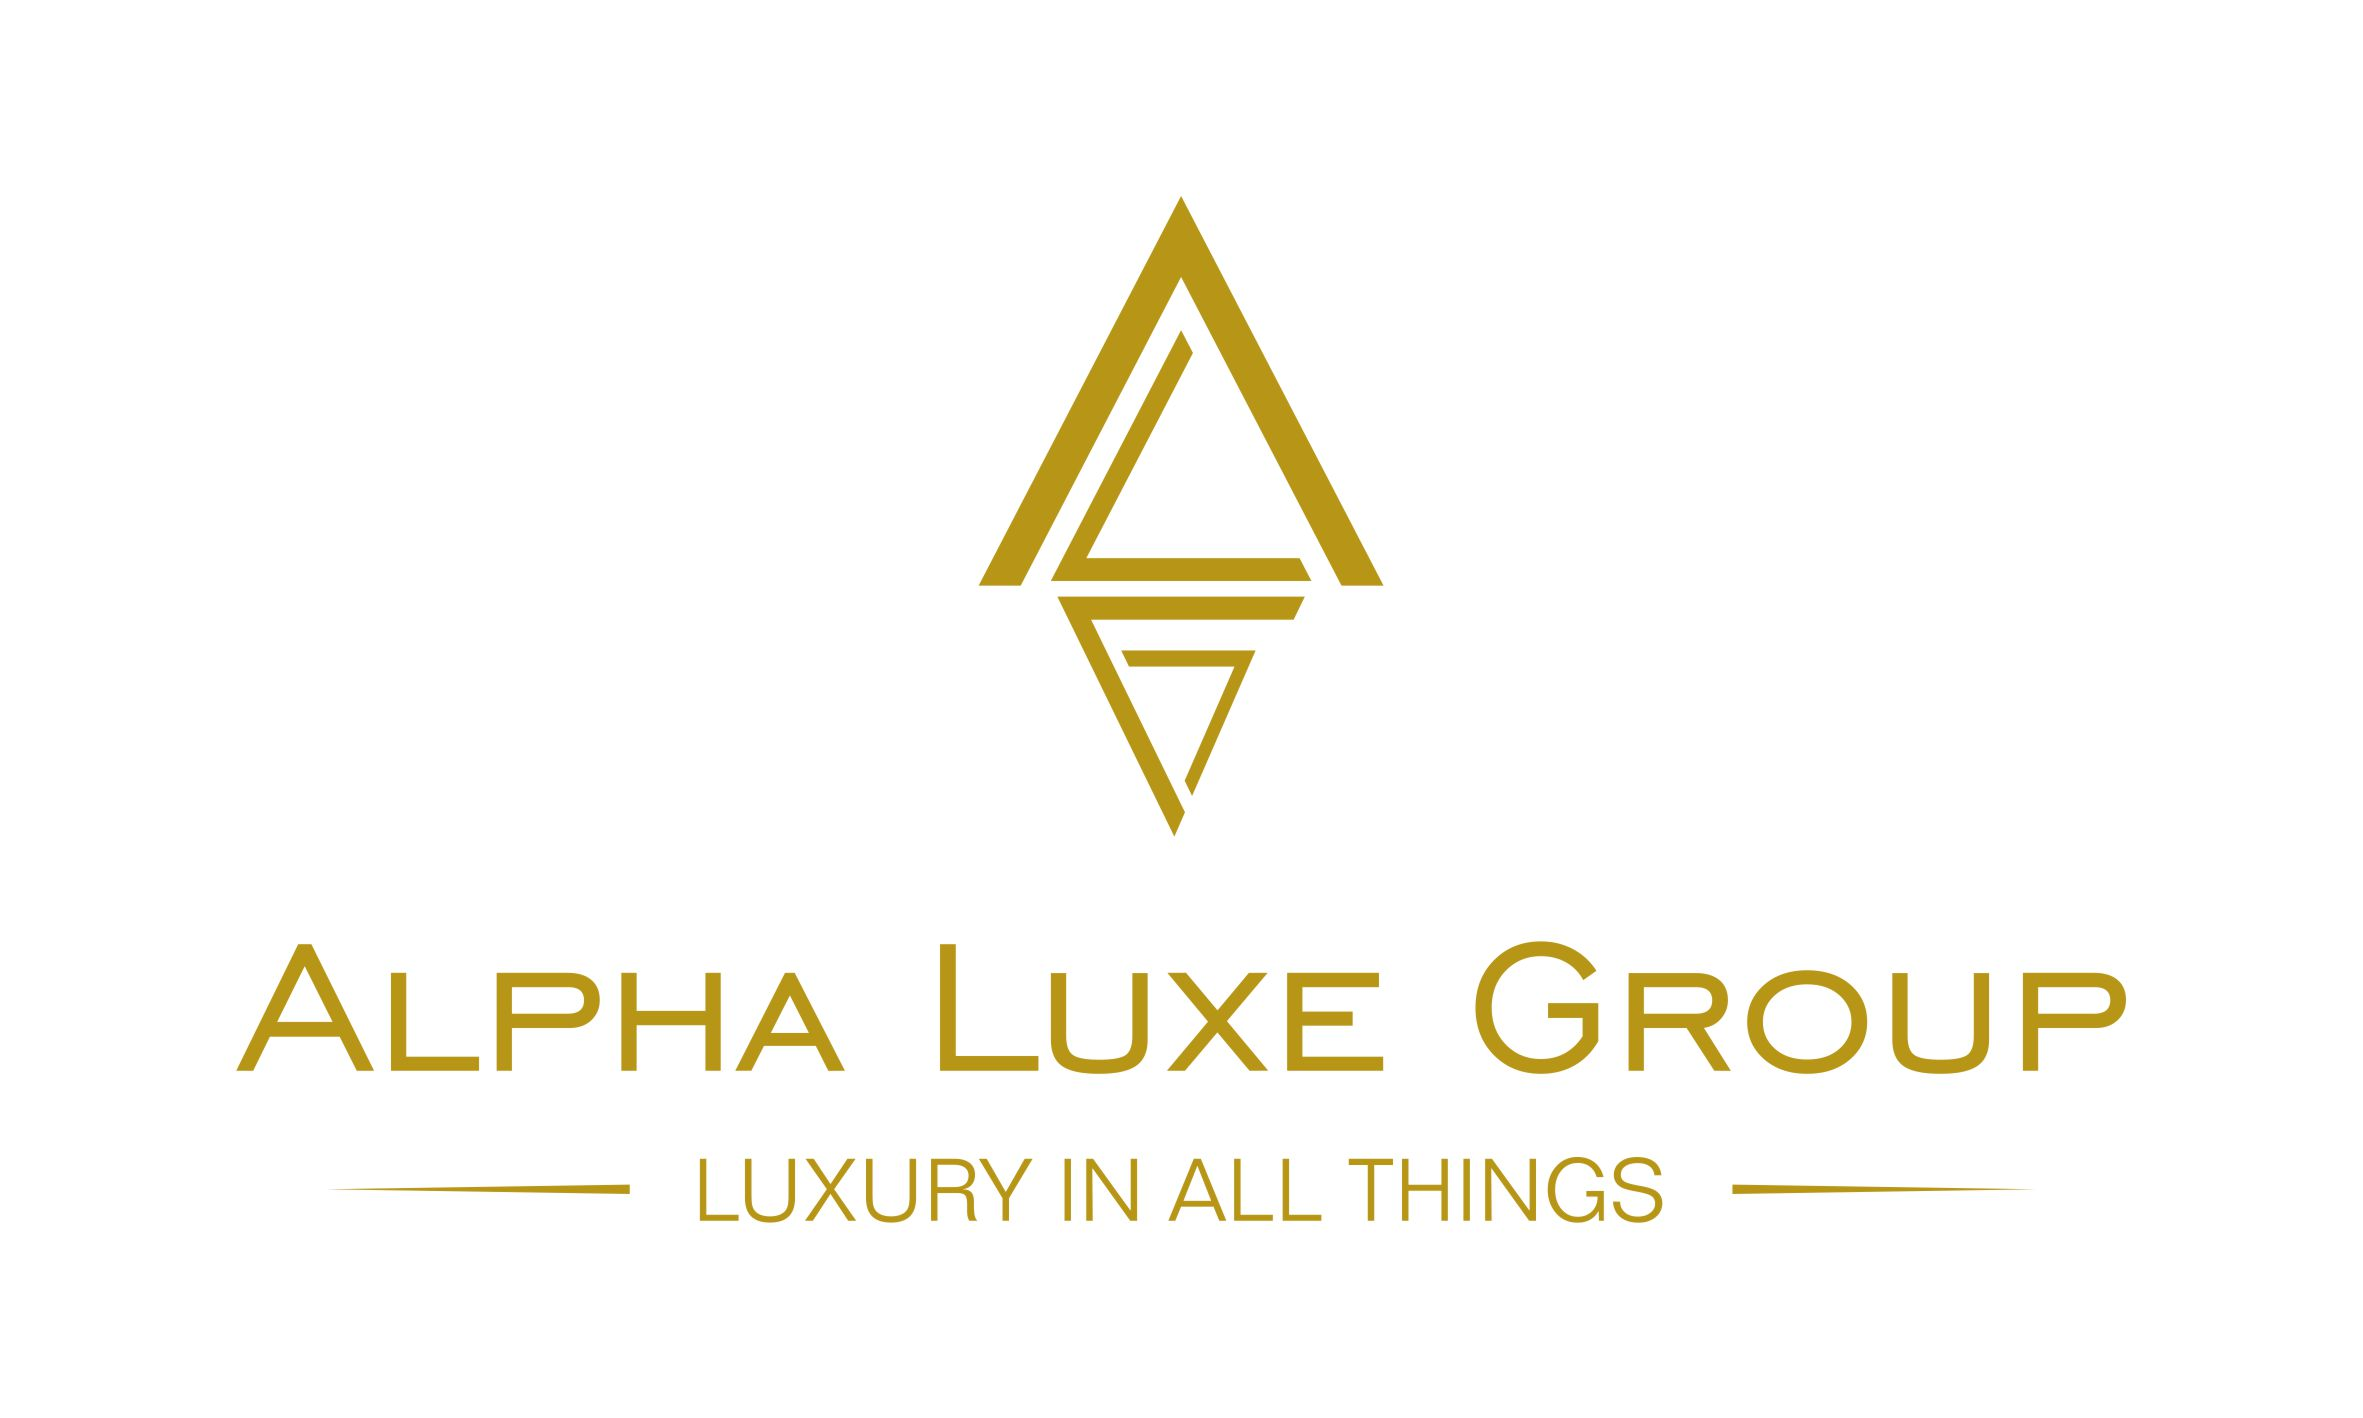 ALPHA LUXE GROUP